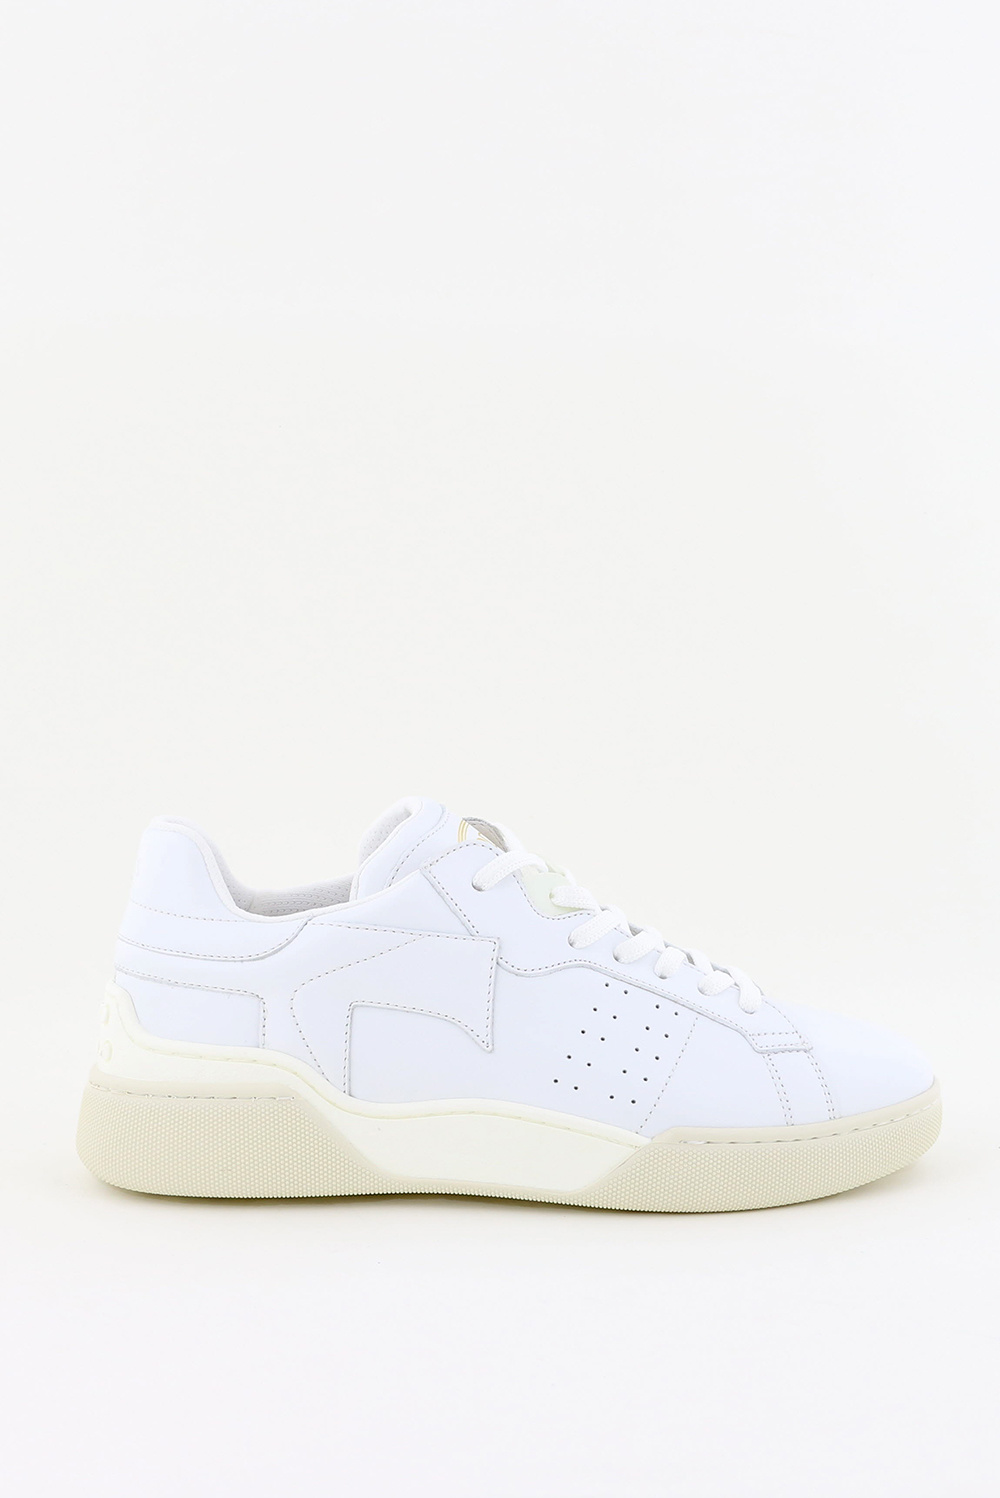 Tods sneakers XXW31C0CU20JUSB001 wit